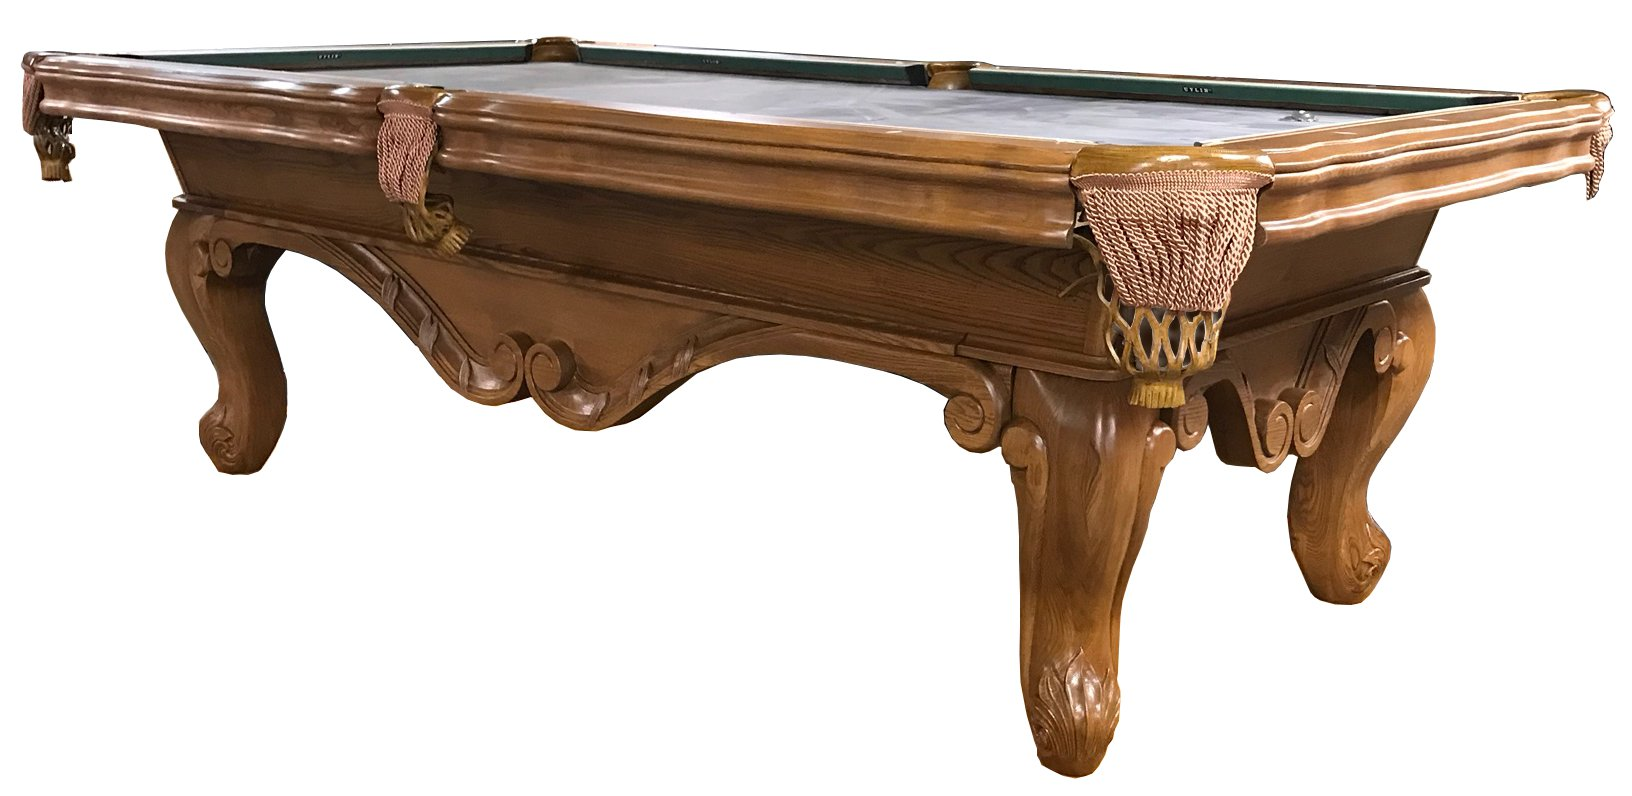 We Purchased A Small Handful Of These Beautifully Carved Pool Tables From A  Billiard Supplier Who Had Way Too Much Debt. His Loss Was Our Gain.